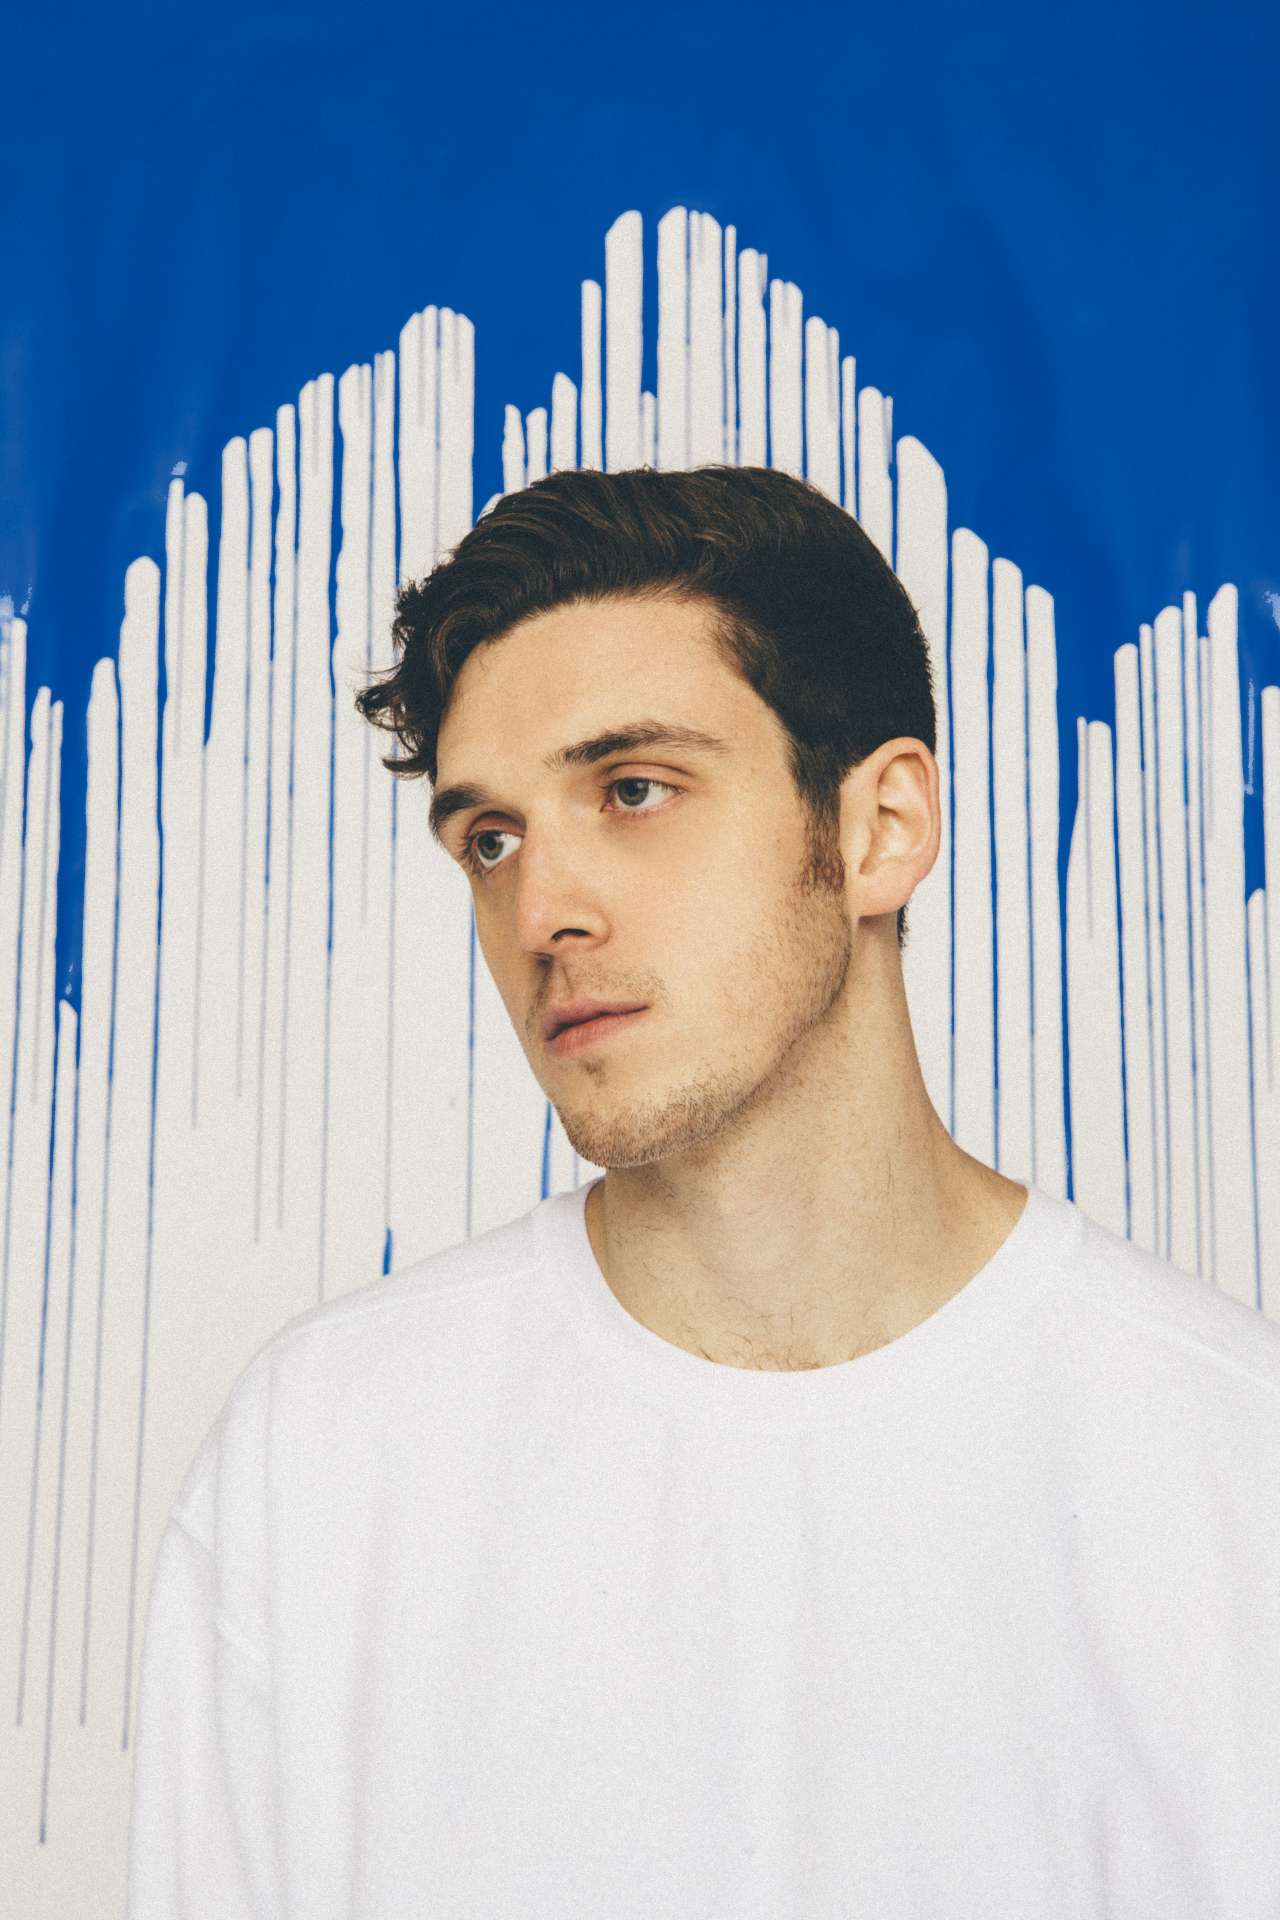 US pop star Lauv (Music Table)